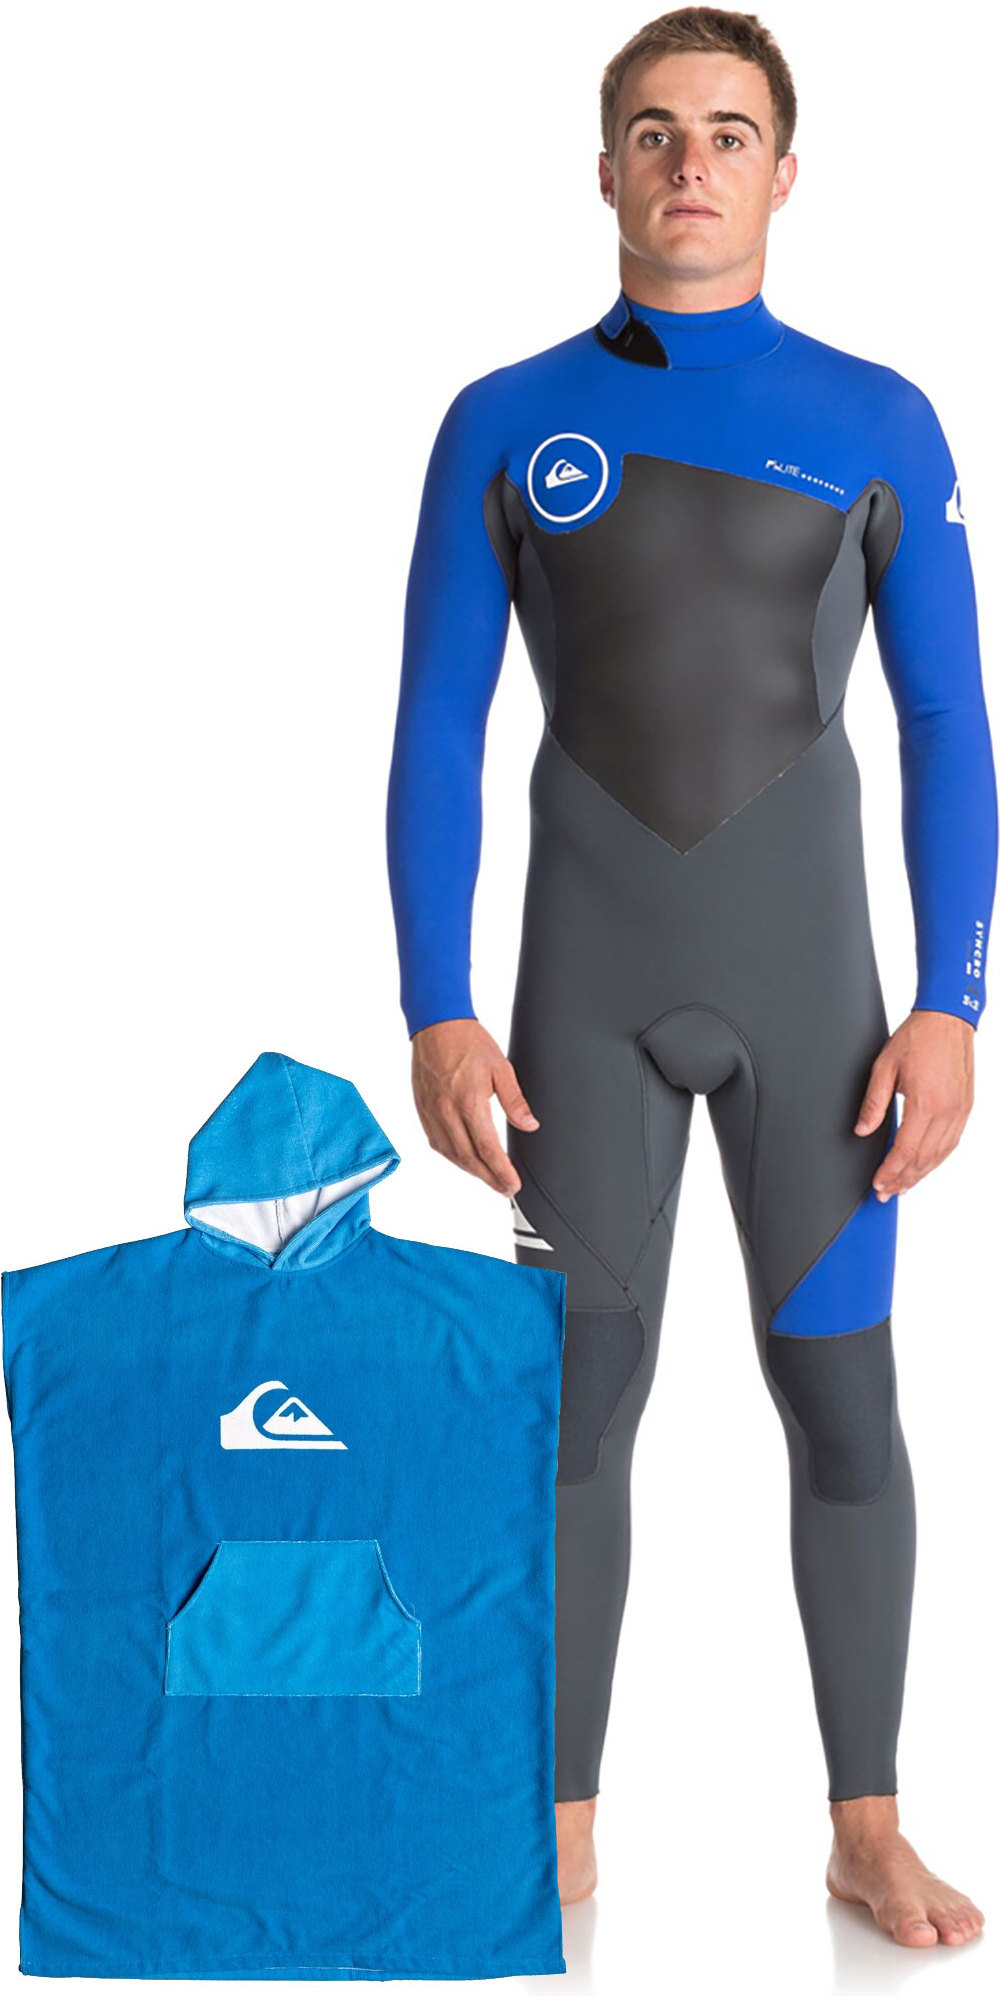 36edbfcfe5be2c Quiksilver-Mens -Syncro-Series-GBS-Back-Zip-Wetsuit-Microfiber-Hooded-Towel-Gunmetal-Blue.jpg